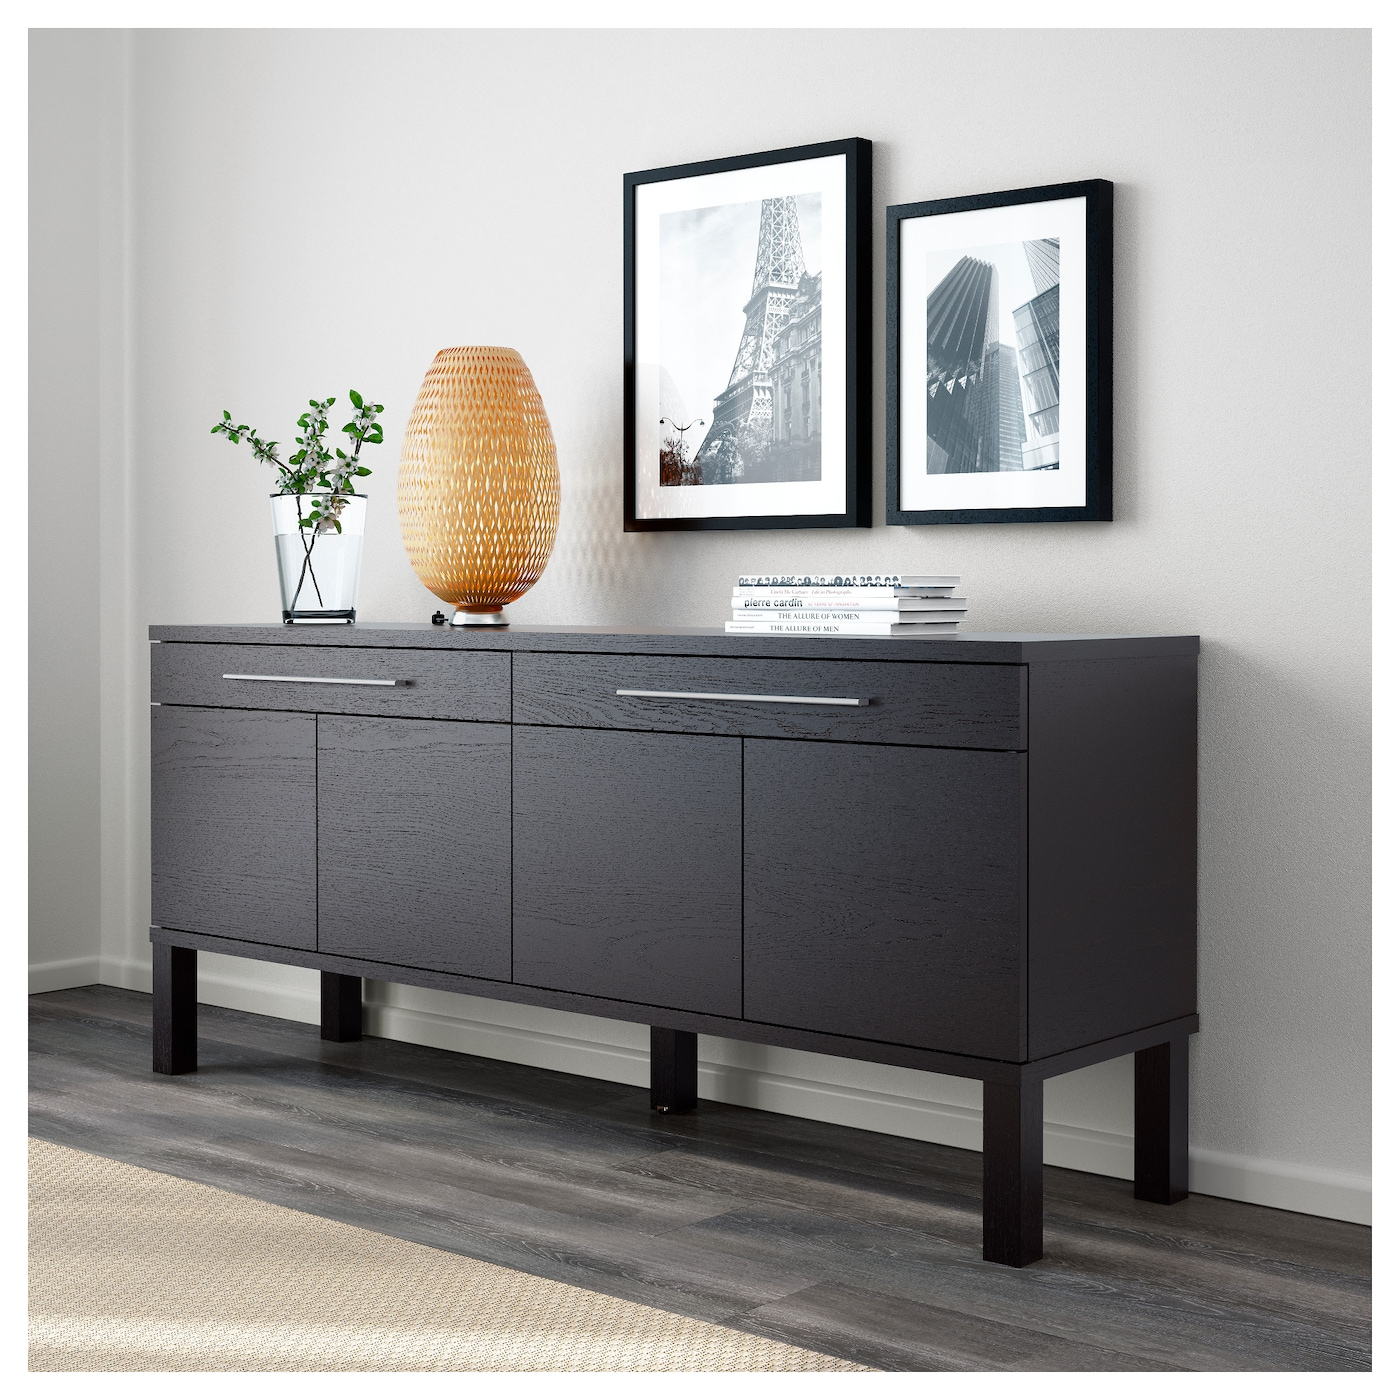 Bjursta sideboard brown black 155x68 cm ikea - Meuble buffet ikea ...